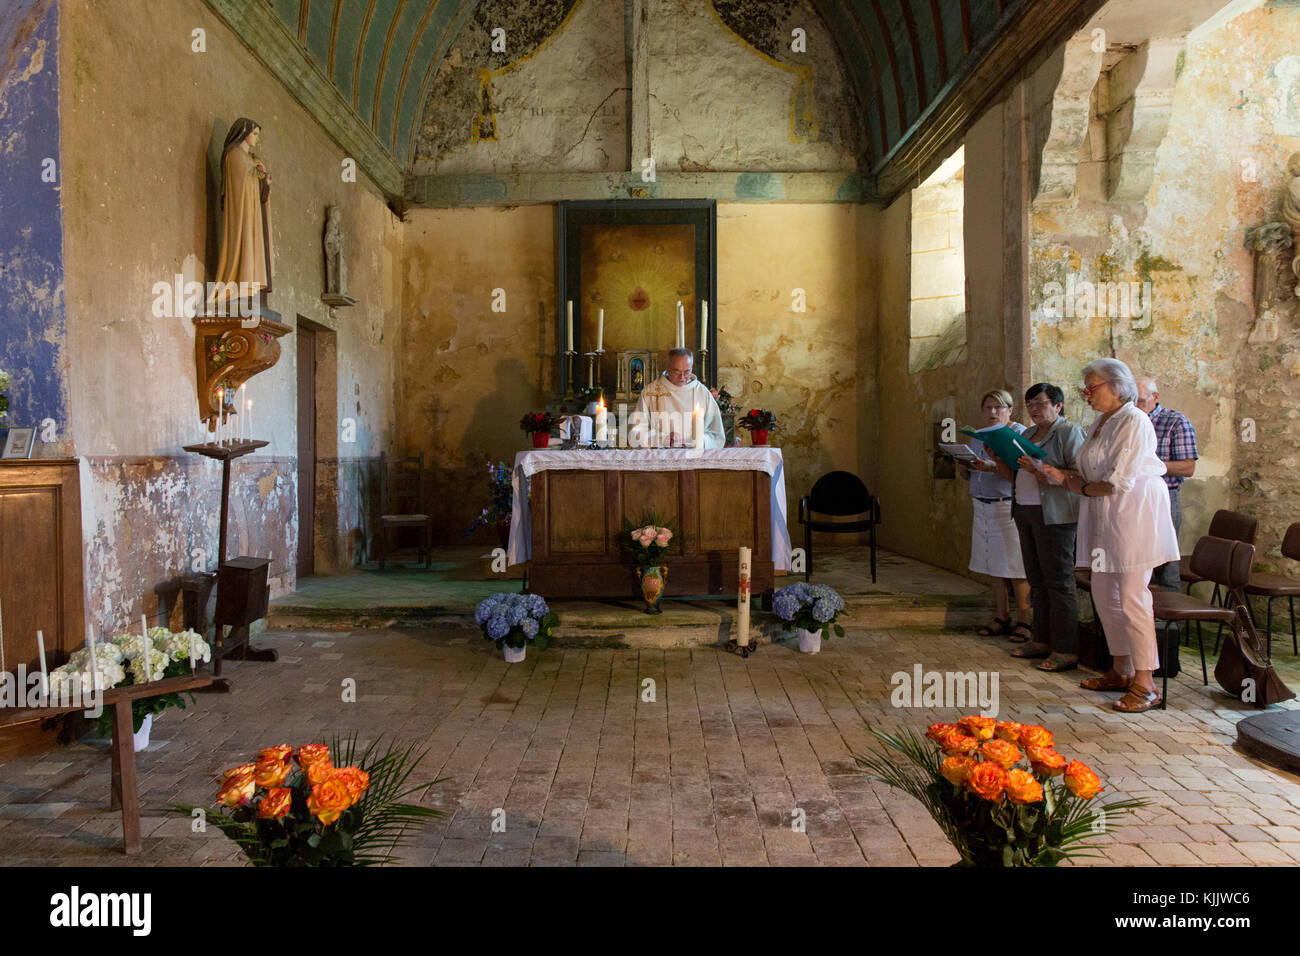 Mass in Champignolles church. - Stock Image